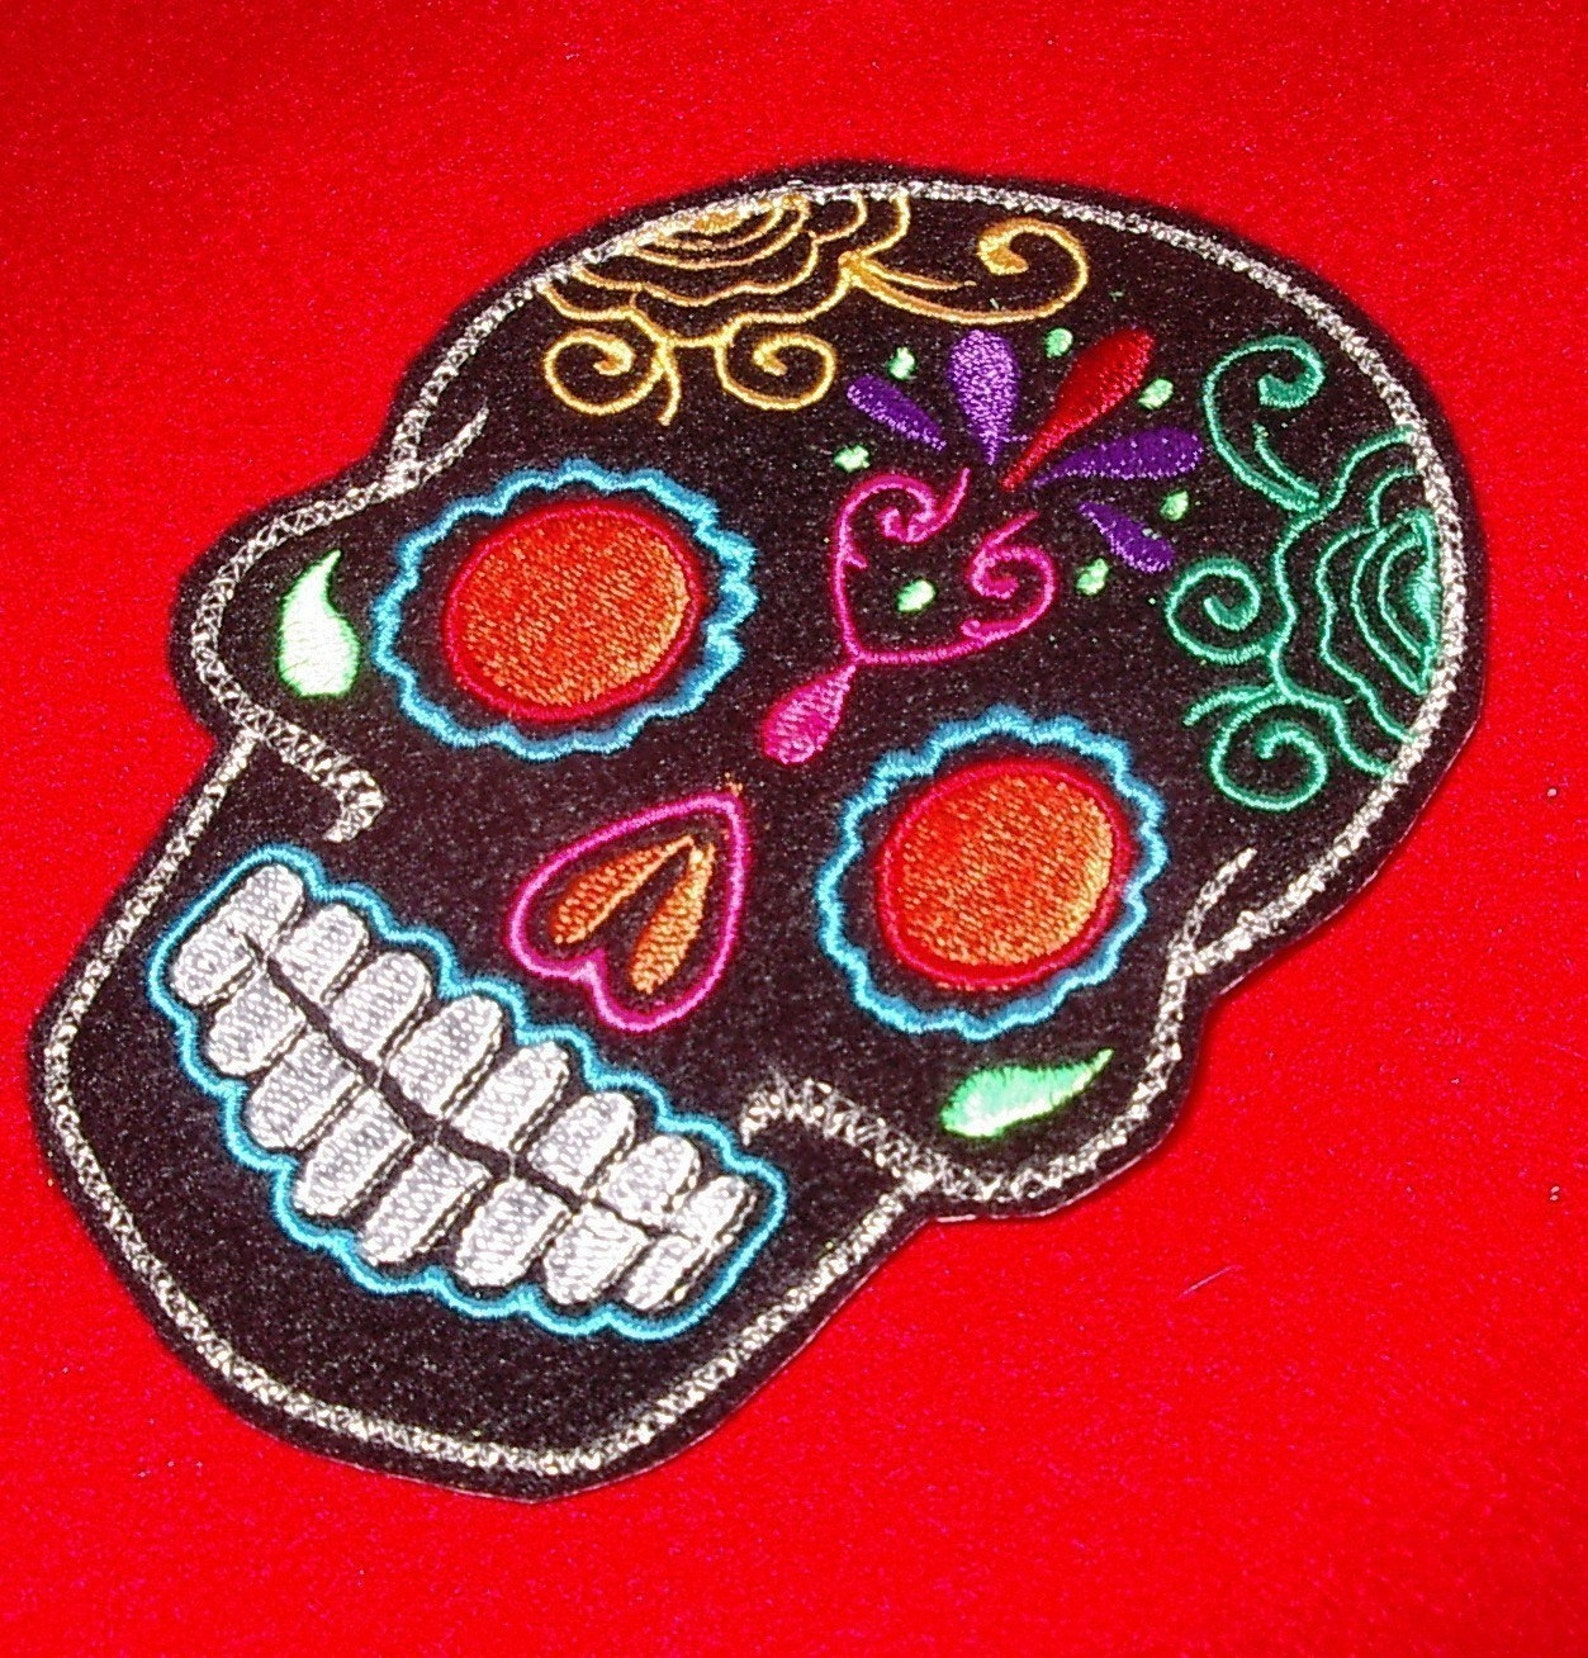 Sewing cactus and sun patch applique embroidered patches sew on badge bj crafts chaire